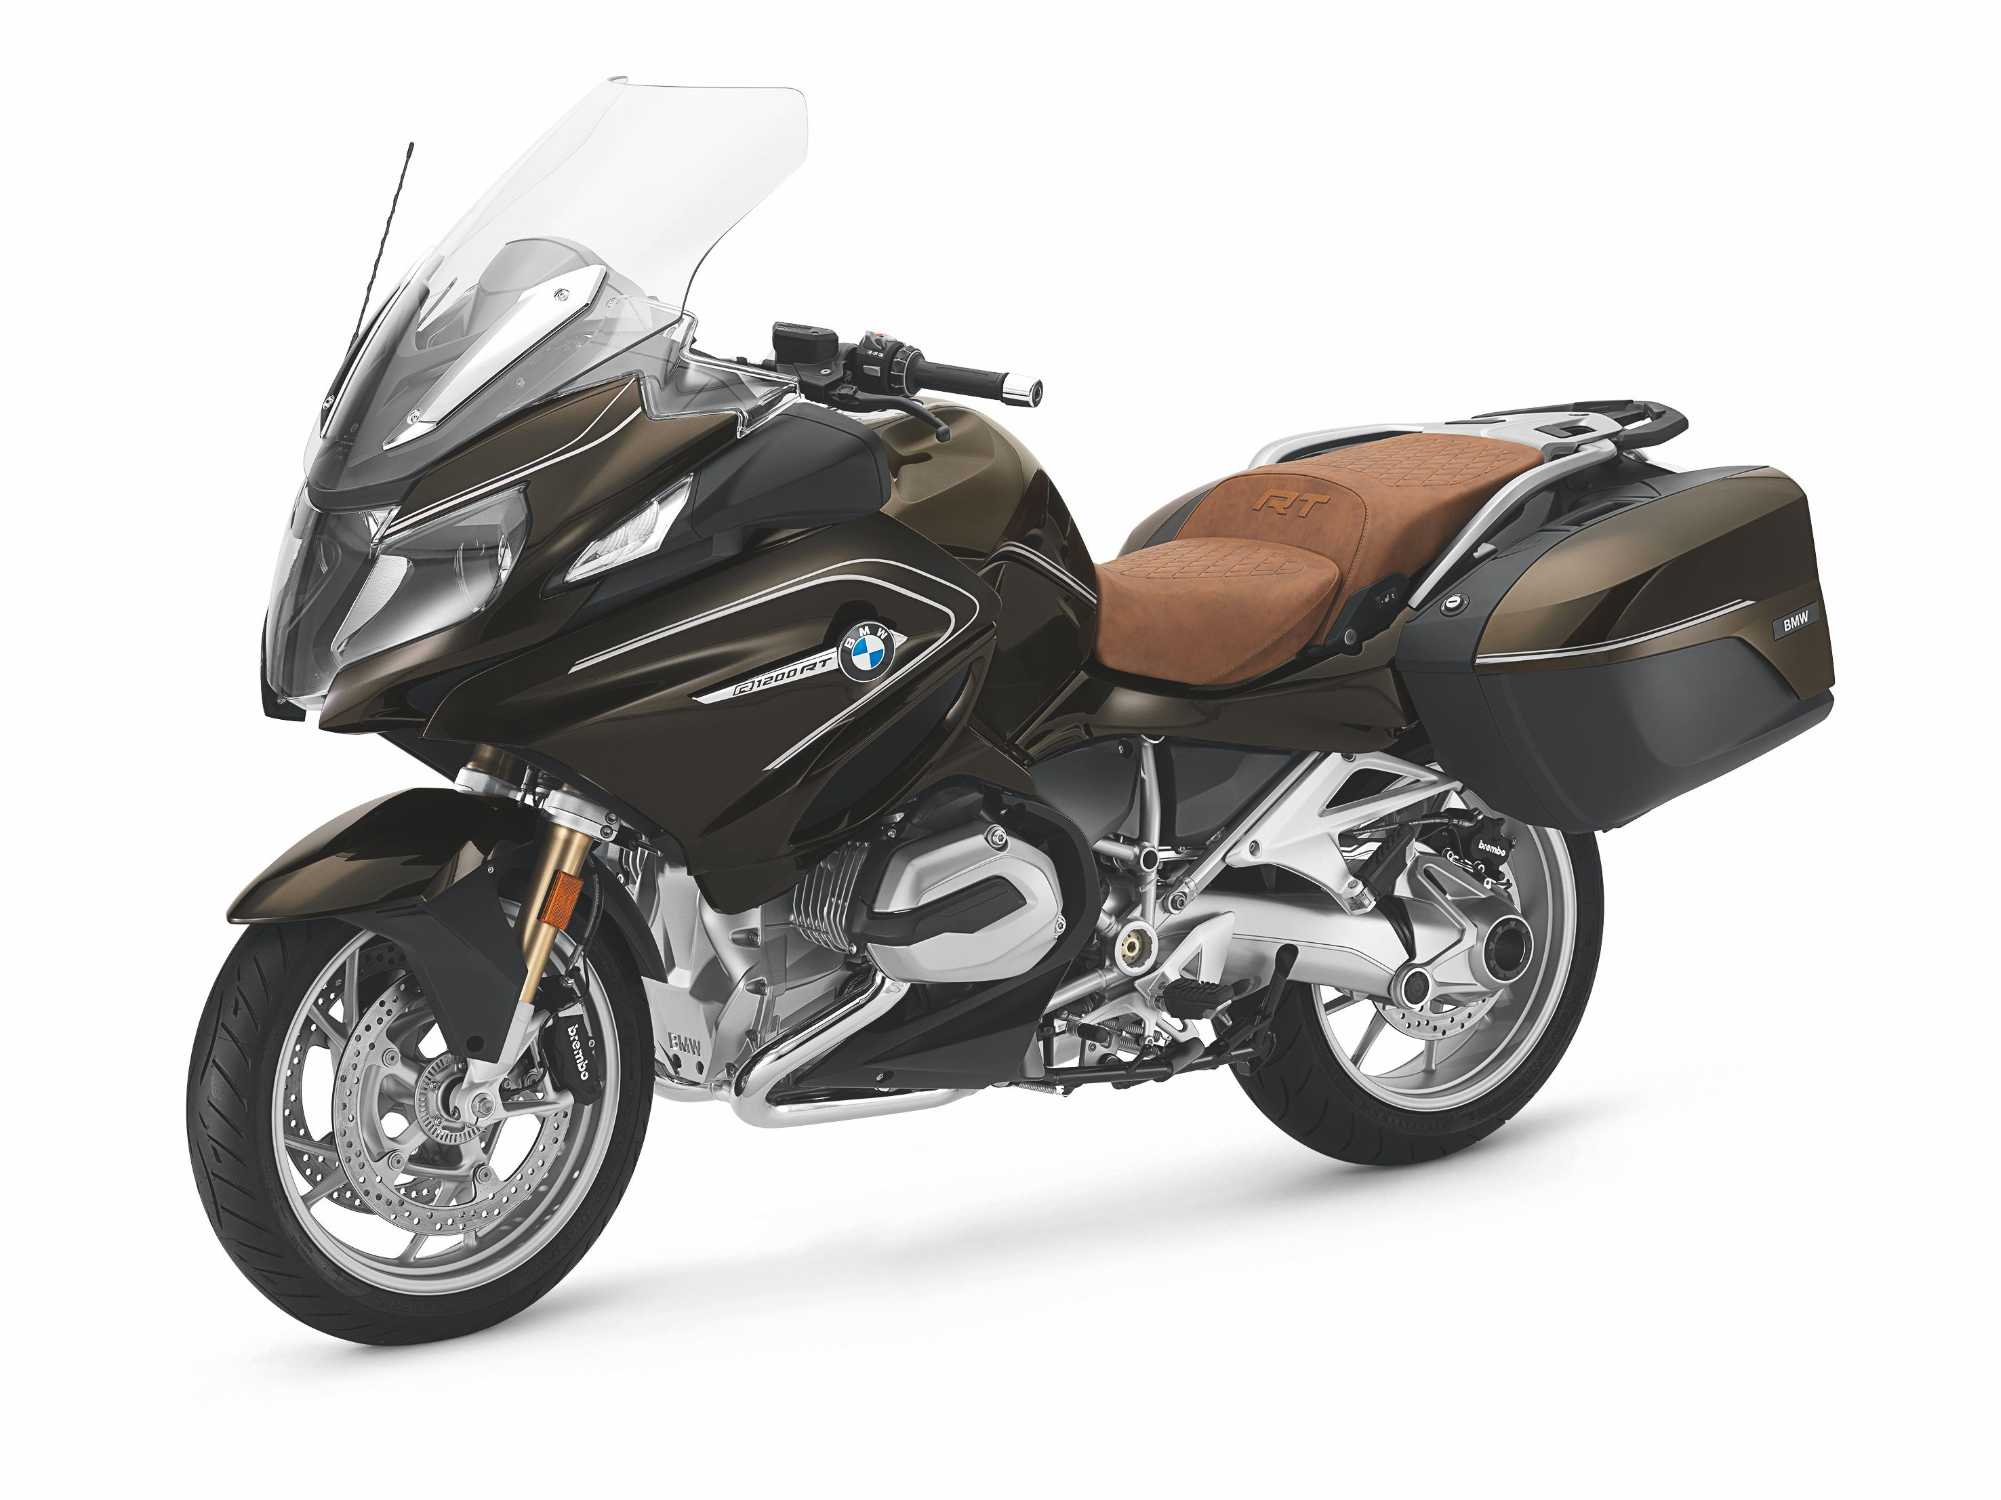 Bmw r 1200 rt in special paint finish sparkling storm Special paint finishes